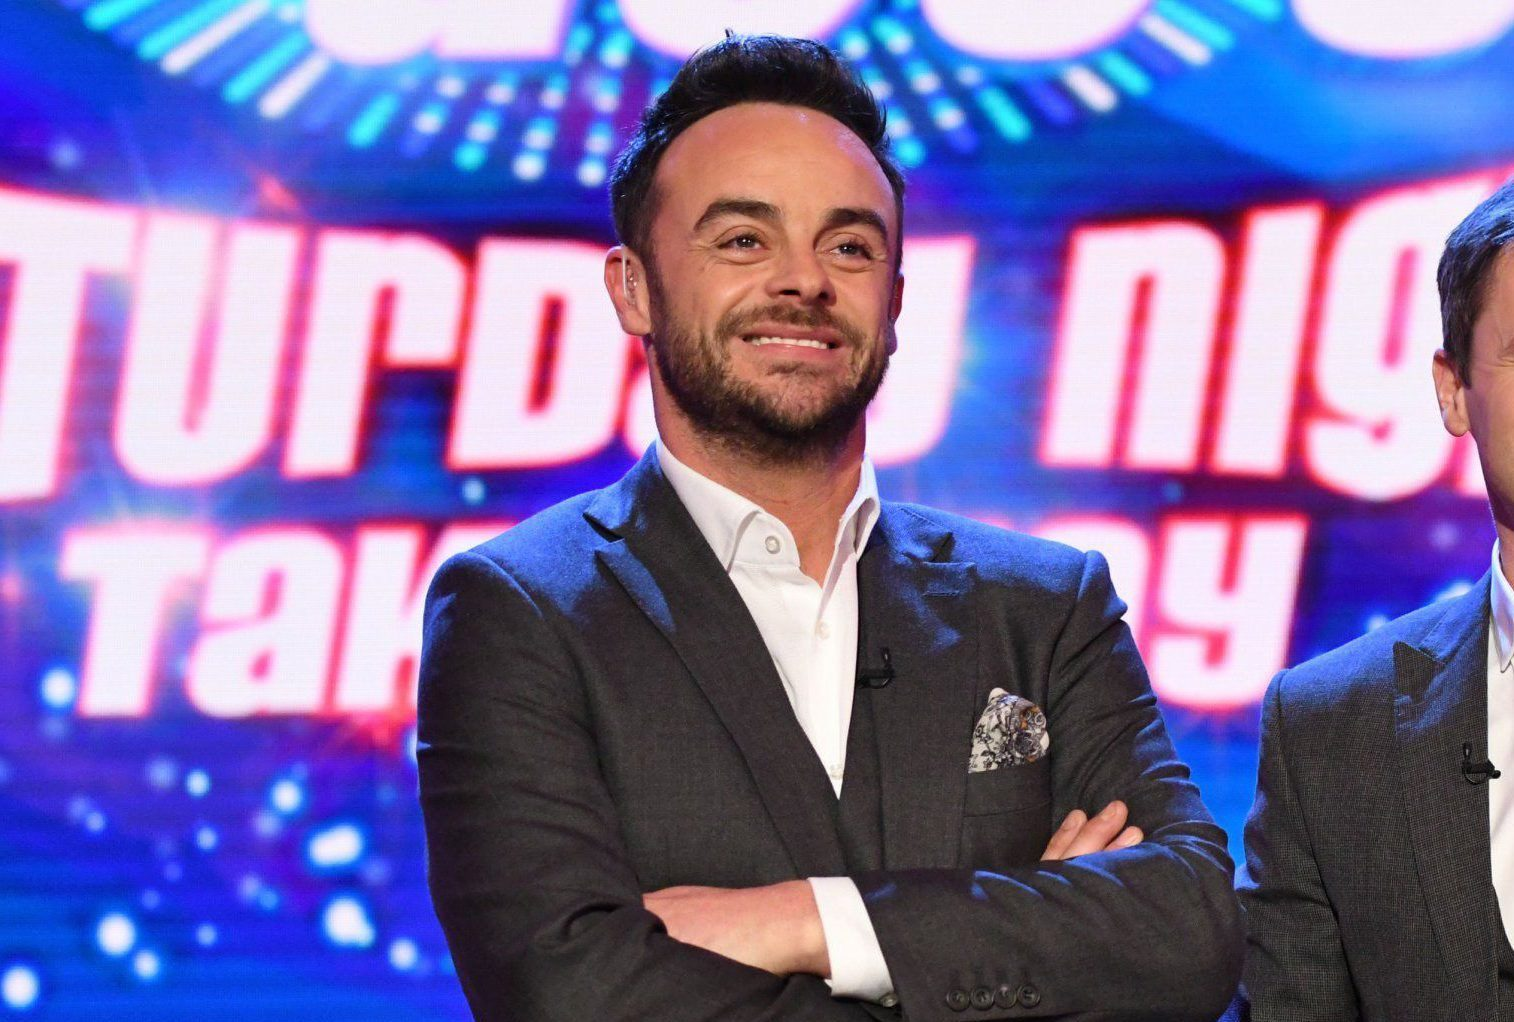 'What will happen to Saturday Night Takeaway?' Fans speculate Dec will go solo after Ant McPartlin drink driving arrest